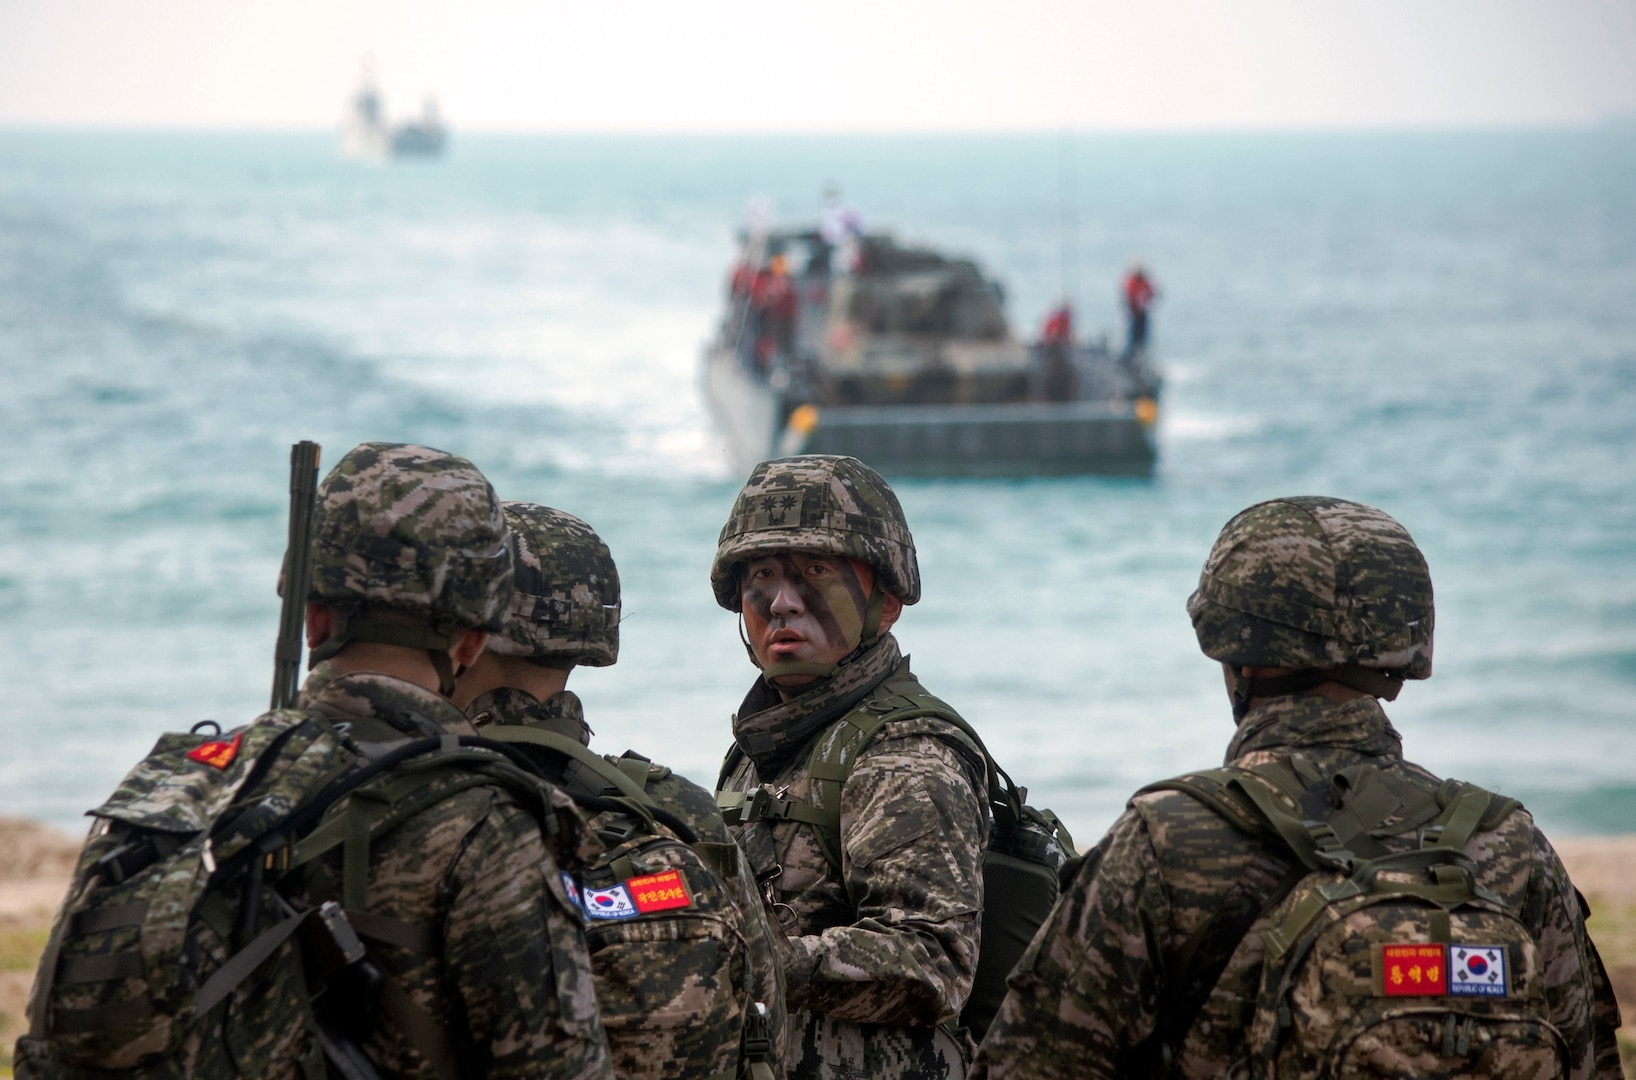 Republic of Korea Marines await the arrival of a ROK landing craft utility on Hat Yao Beach, Rayong province, Thailand during Exercise Cobra Gold 2018, Feb. 17, 2018. CG18 provides a venue for the United States, allied and partner nations to advance interoperability and increase partner capacity in planning and executing complex and realistic multinational force and combined task force operations. CG18 is an annual exercise conducted in the Kingdom of Thailand held from Feb. 13-23 with seven full participating nations.